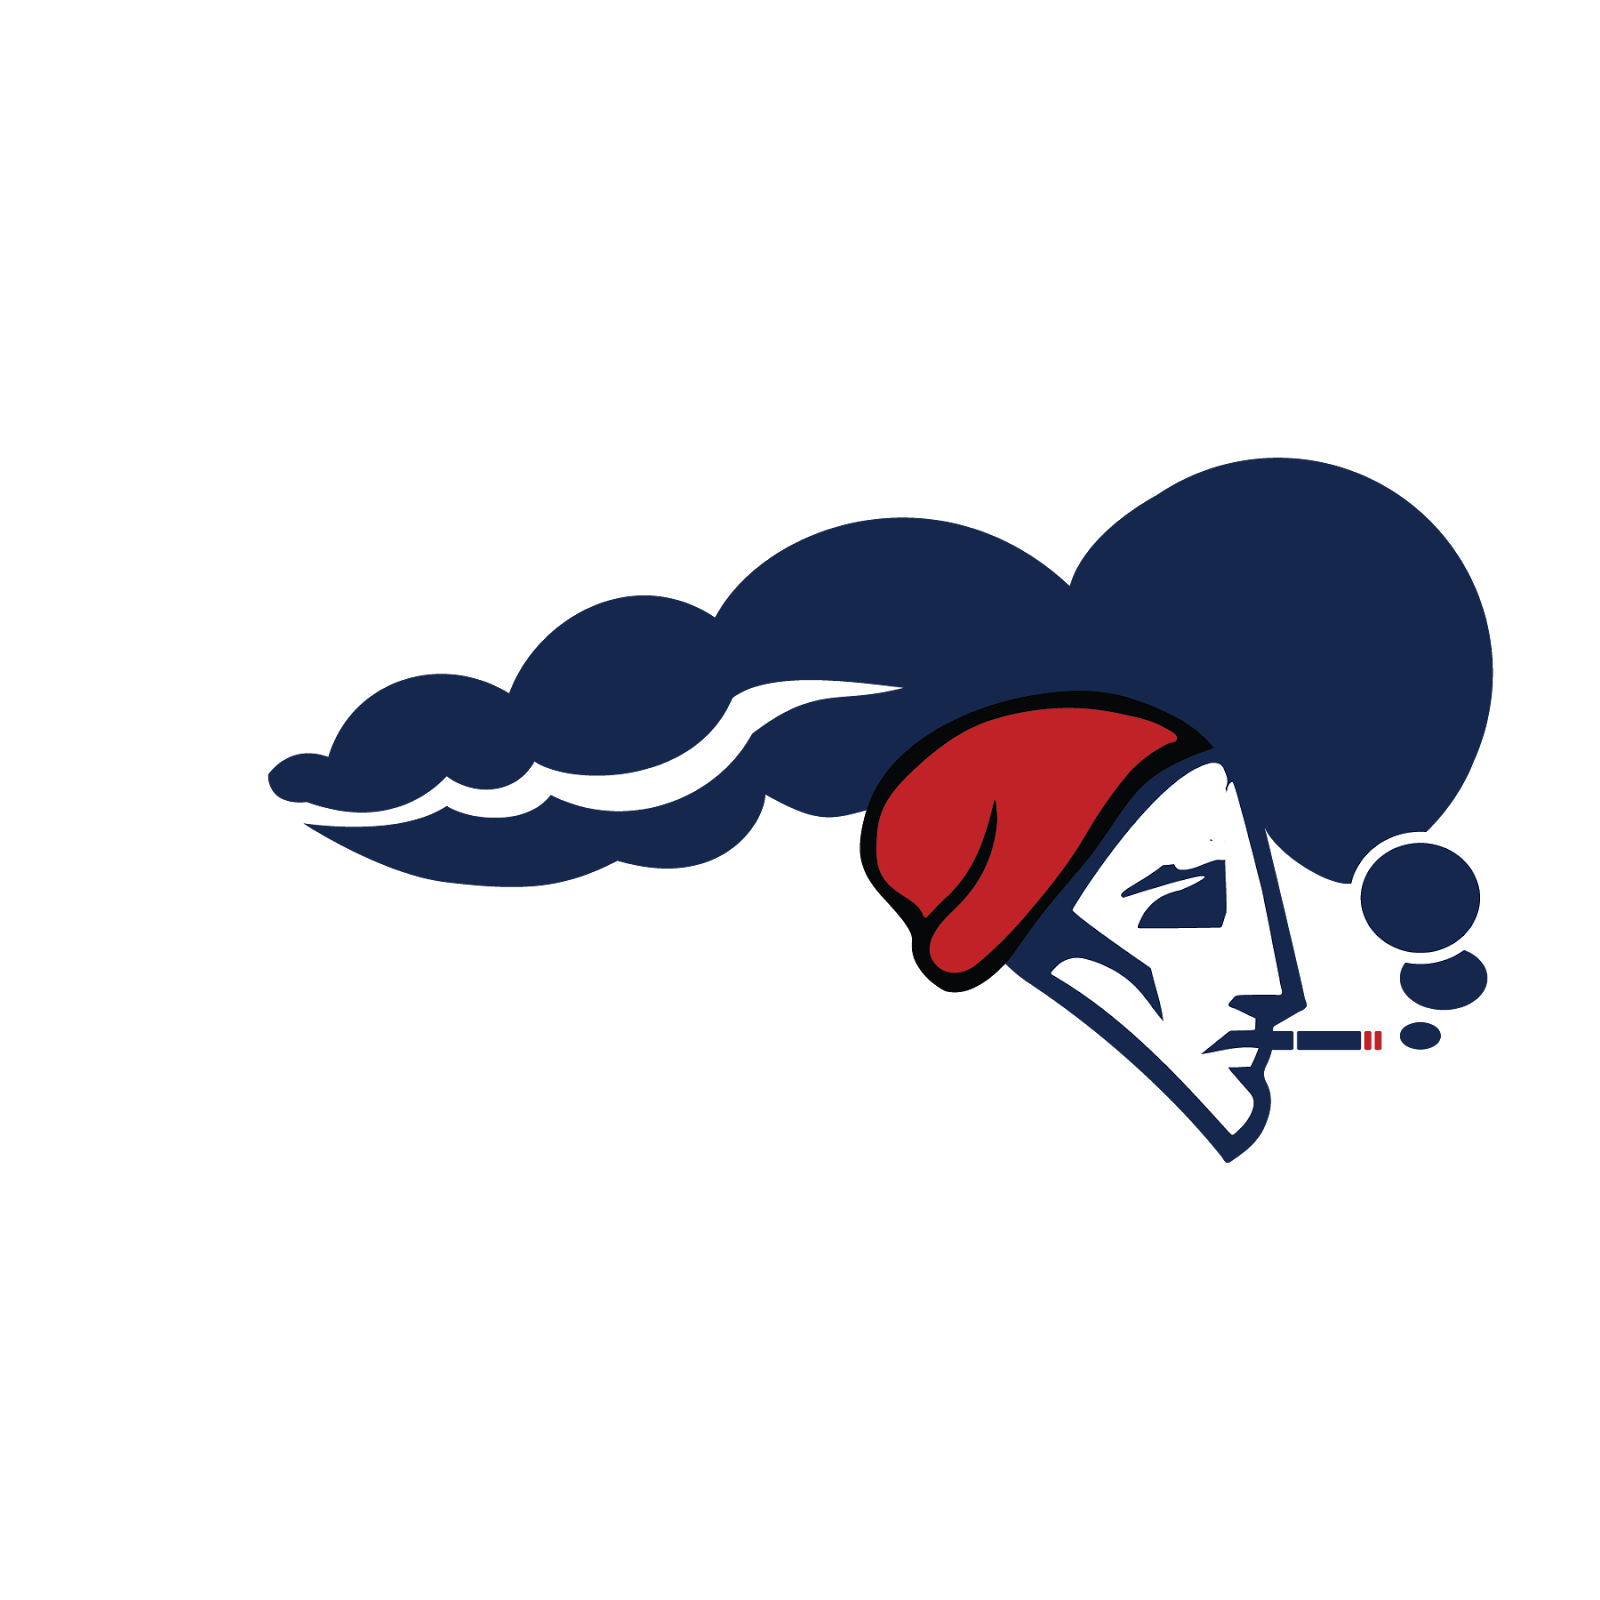 New England Patriots, metal, logo, re-imagined